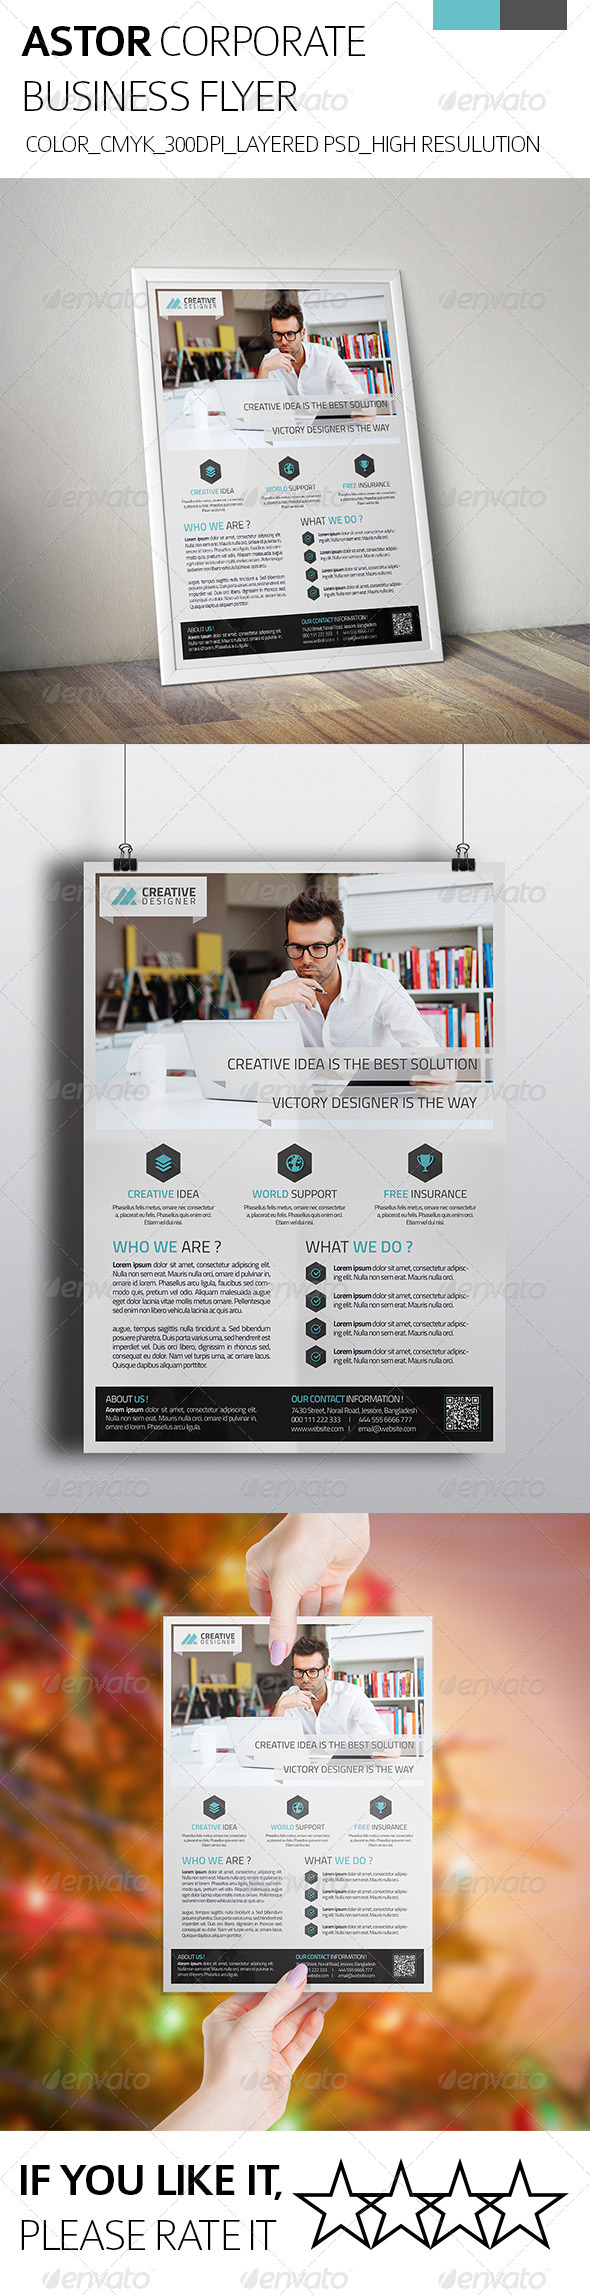 GraphicRiver Astor Corporate Business Flyer 8232104